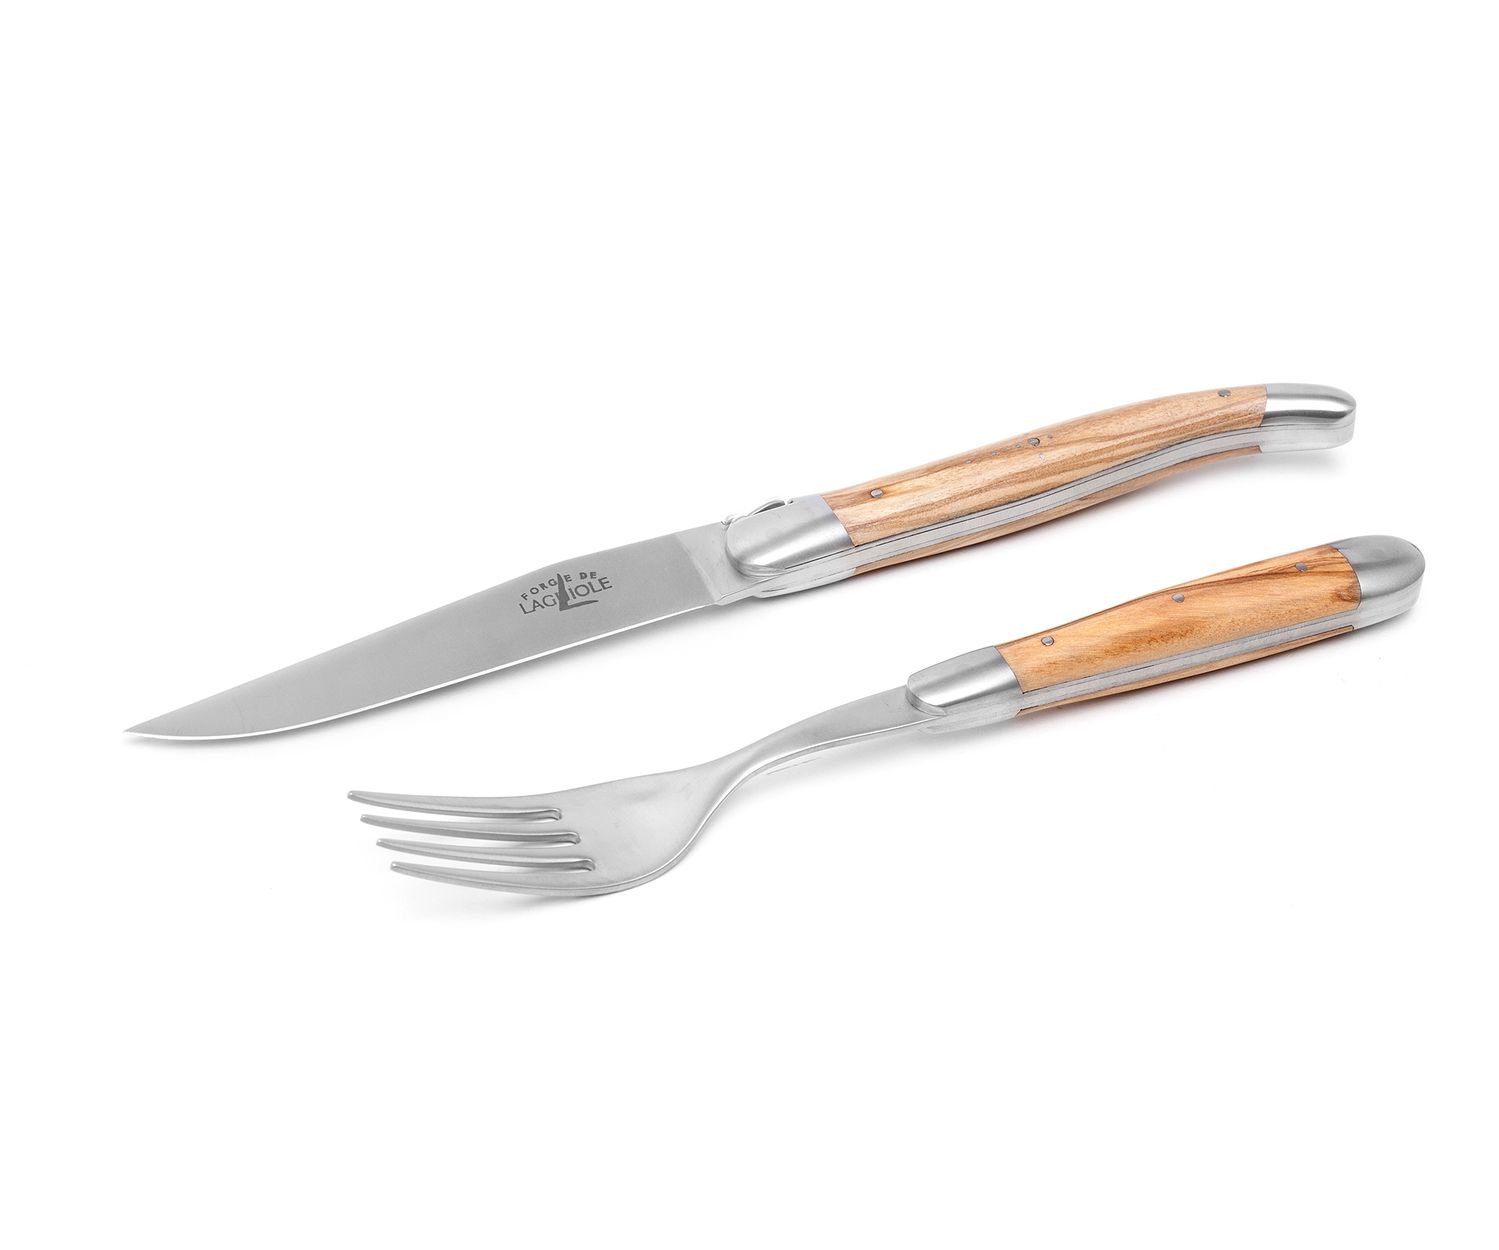 Forge de Laguiole Steak-Set 2-tlg, Olive